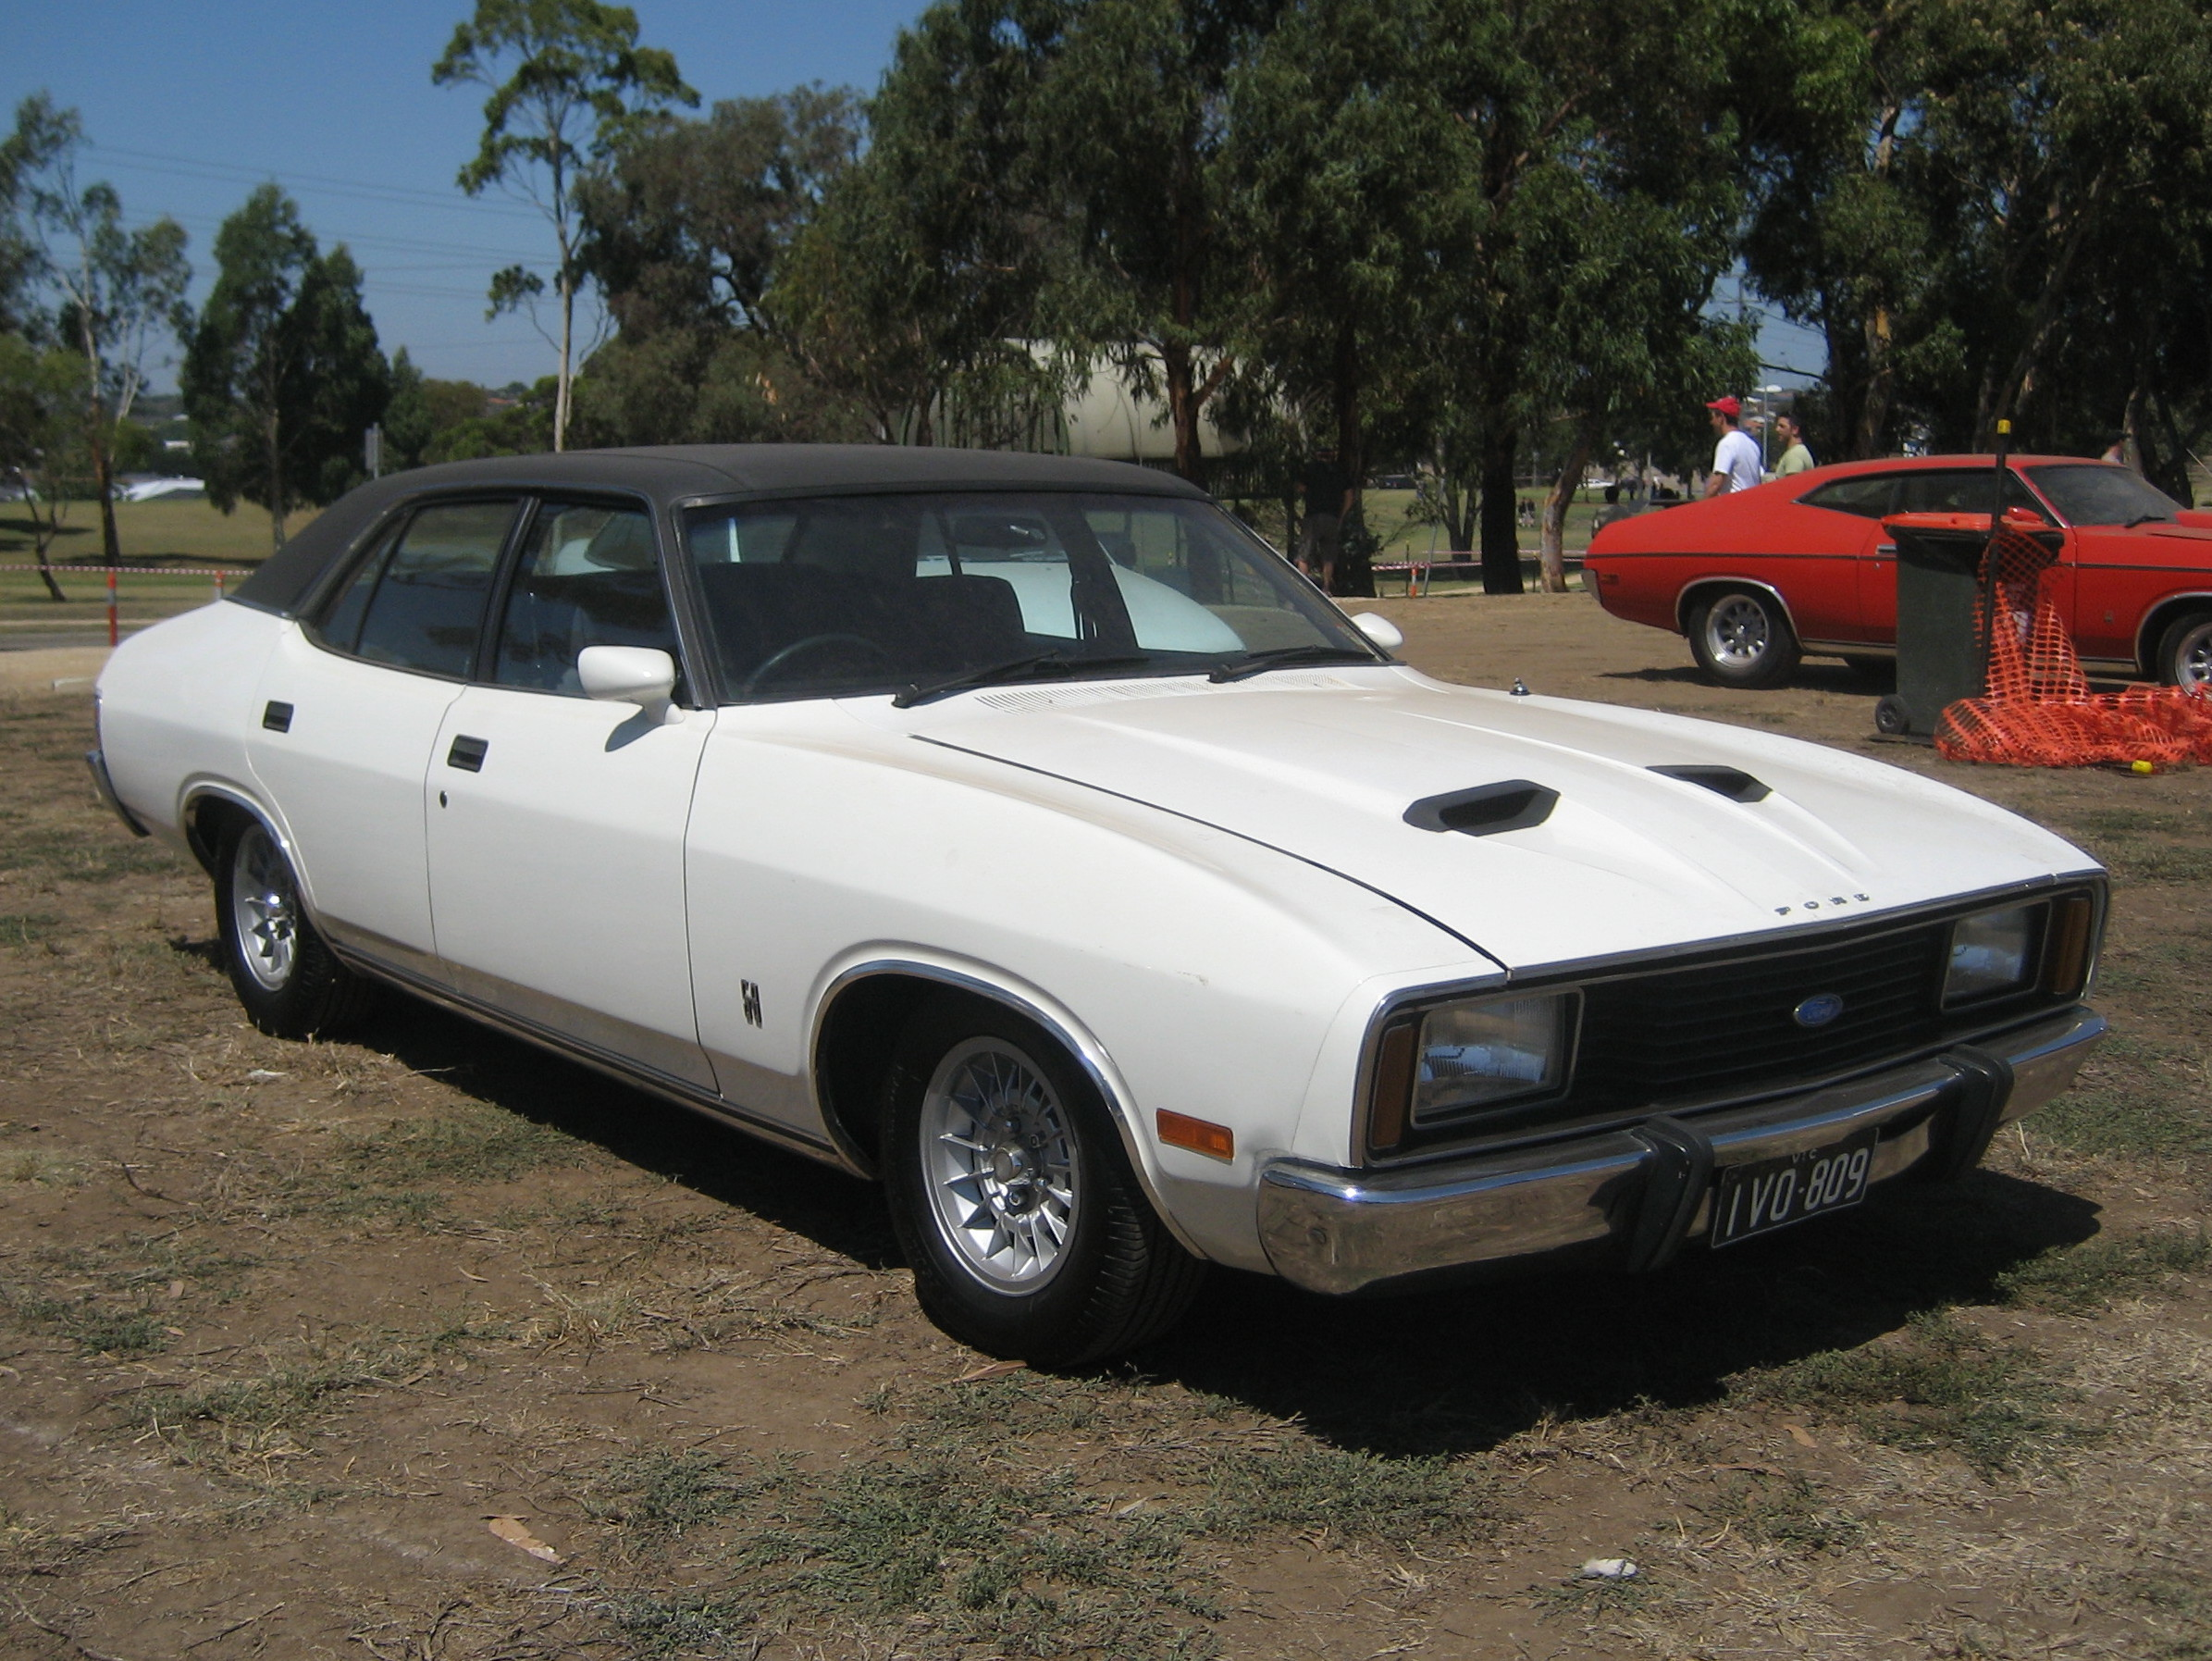 file ford fairmont xc gxl sedan jpg